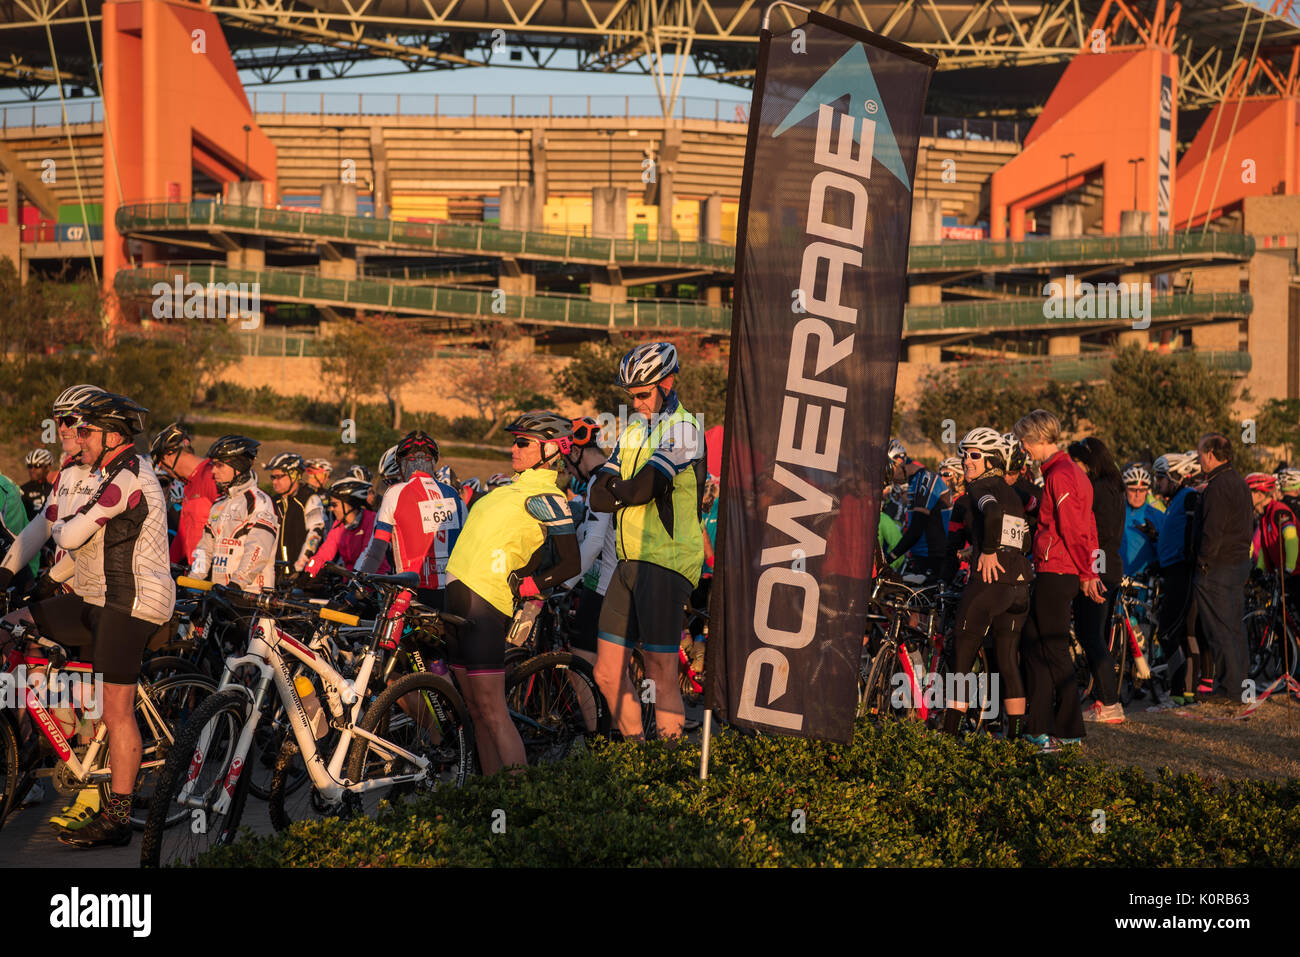 Cyclists at the start of the Jock Challenge outside the Mbombela stadium - Stock Image